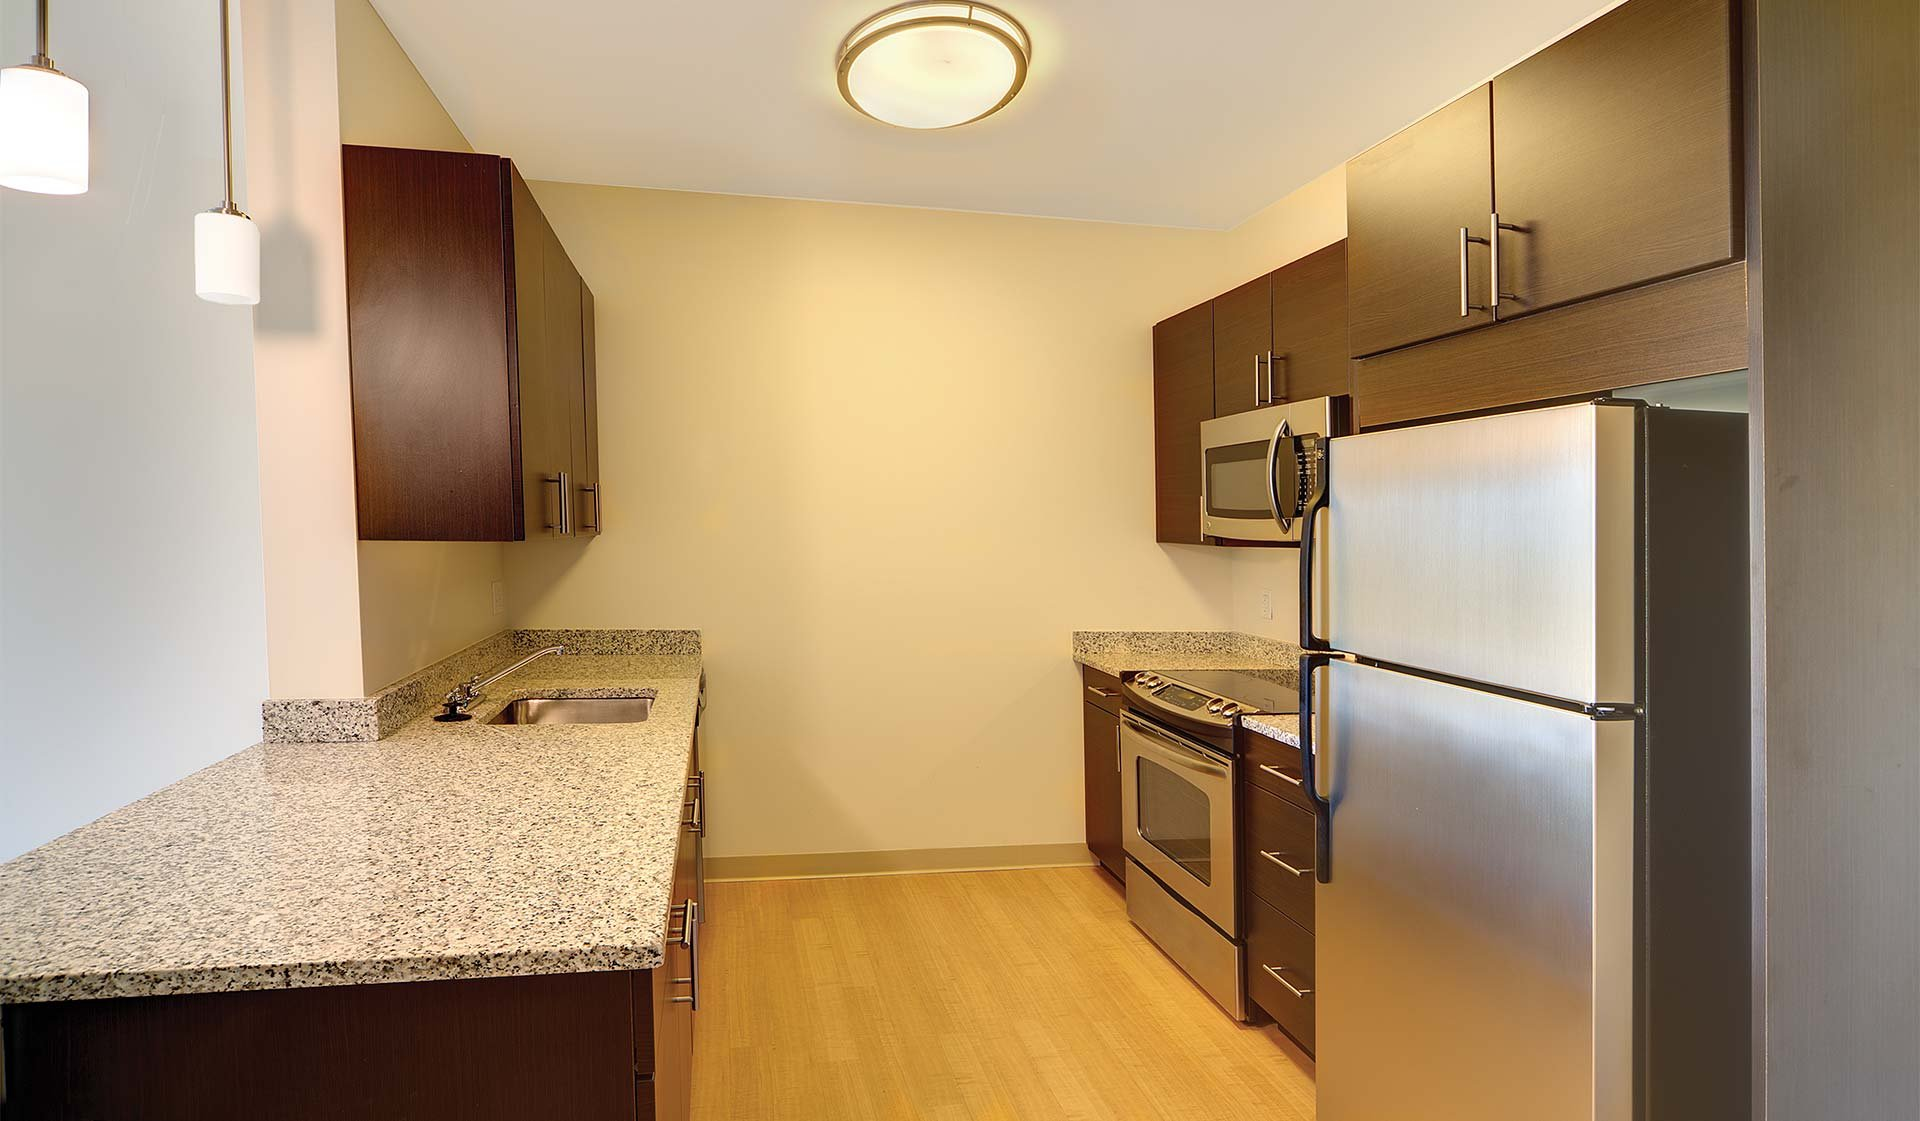 Charles Bank Apartments - modern kitchen with dark wood cabinets and stainless steel appliances - Waterown, massachusetts